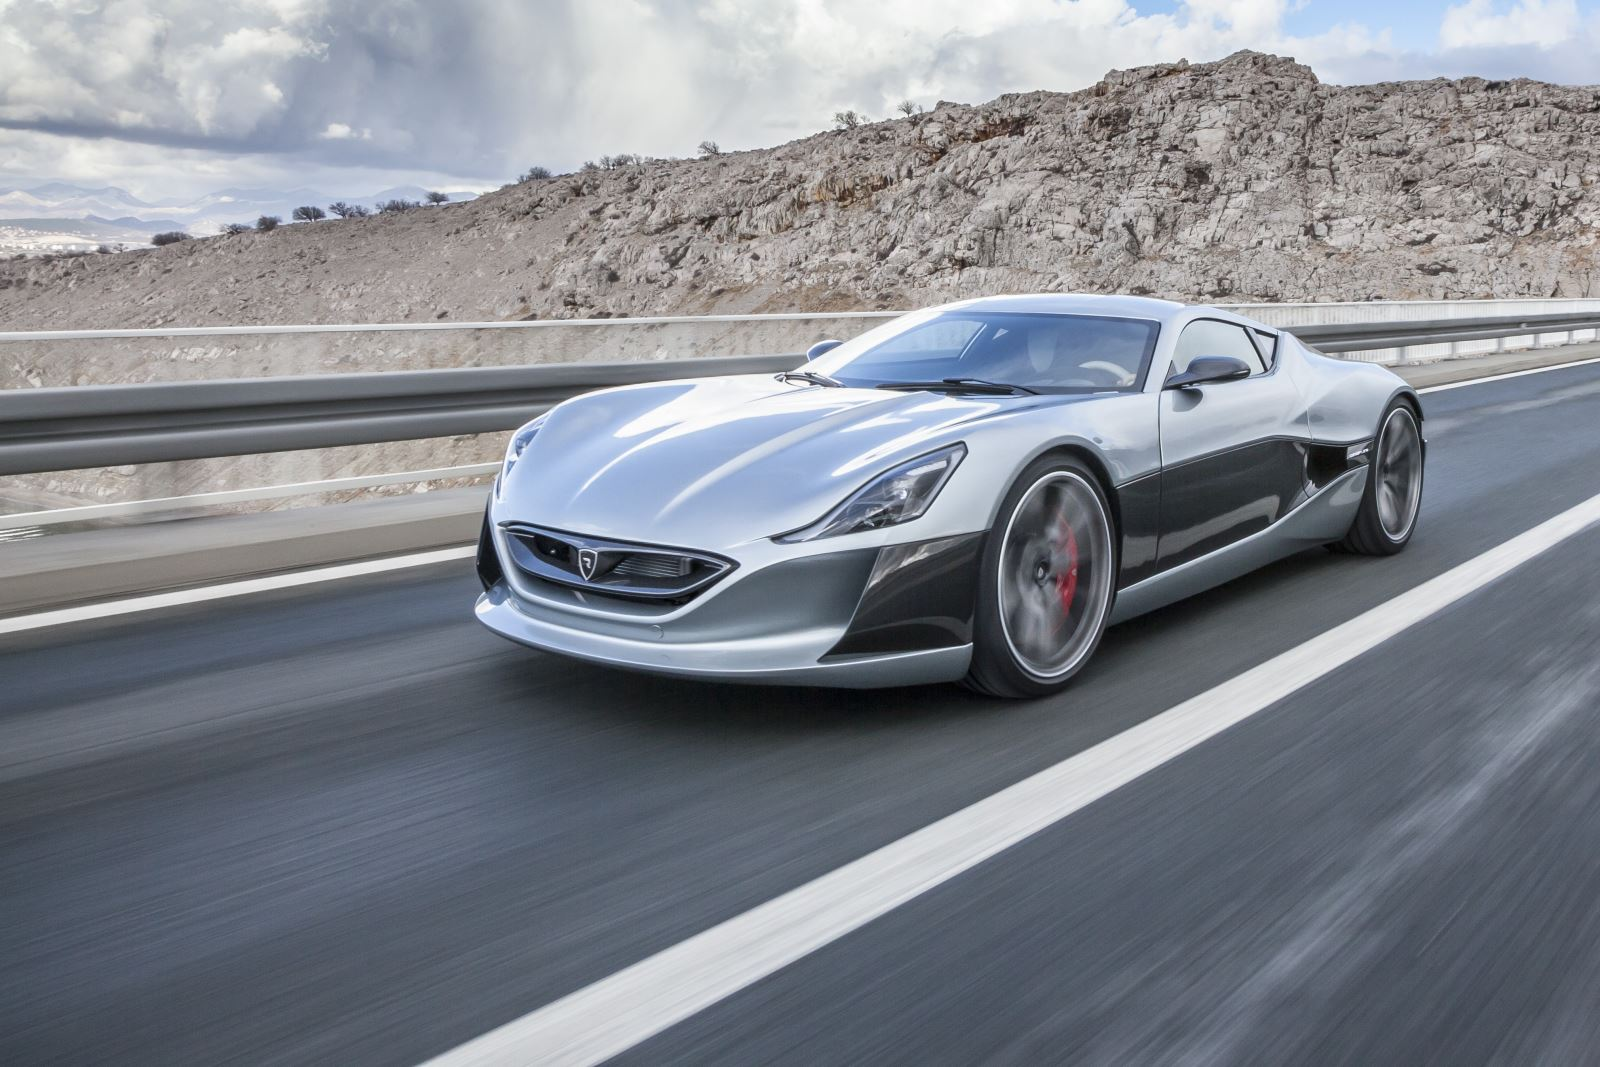 The Concept_One from Rimac (photo: Rimac Automobili)